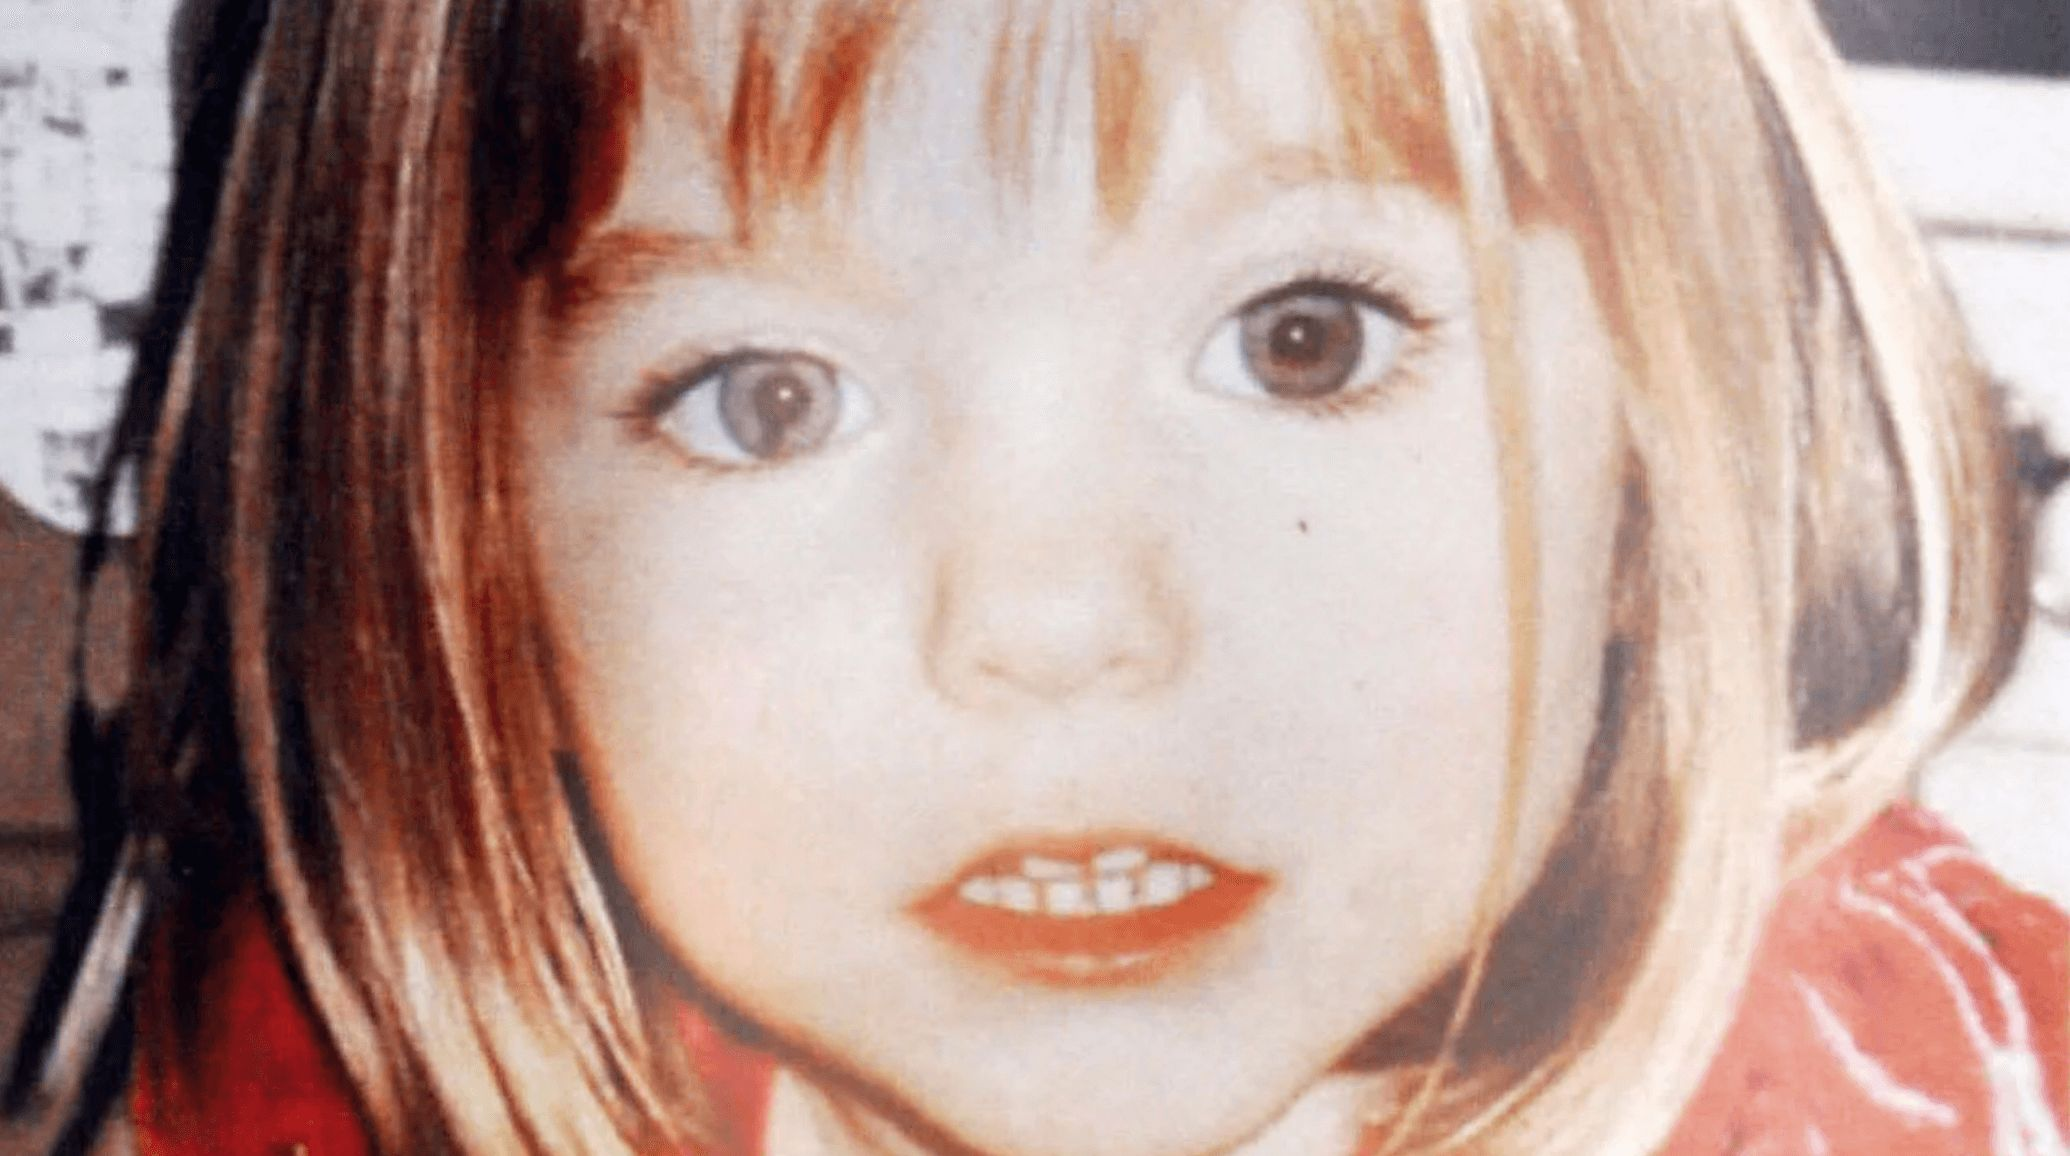 Image may contain: McCann spokesman Clarence Mitchell, Madeleine McCann, Clarence Mitchell, theory, what happened, Netflix, Girl, Art, Drawing, Portrait, Photo, Photography, Outdoors, Smile, Female, Head, Person, Human, Face